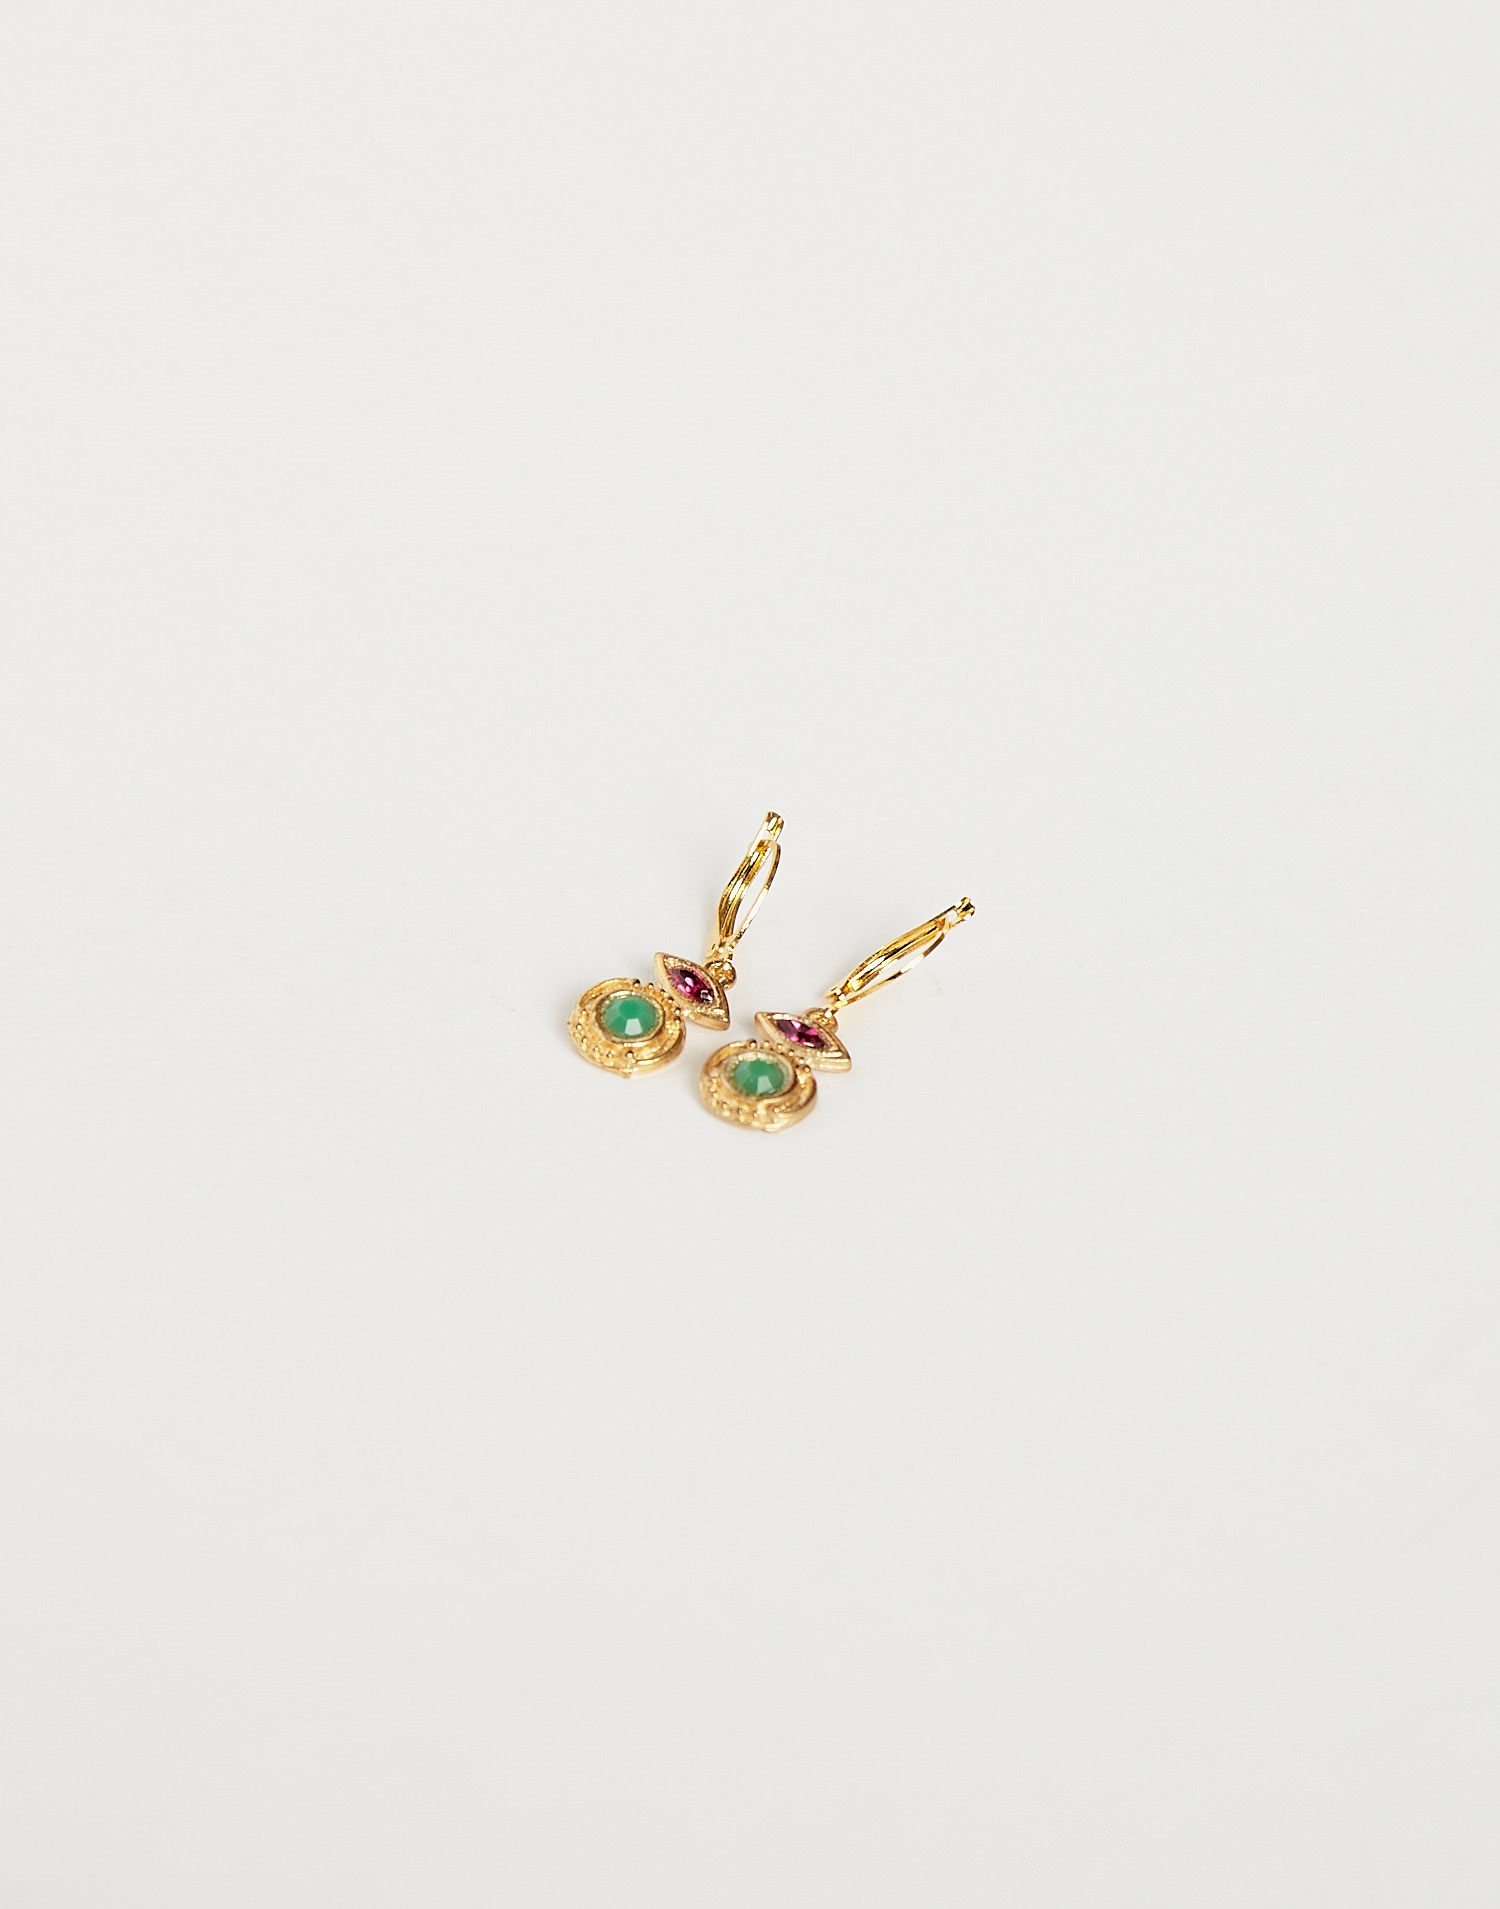 Indian earring with stones